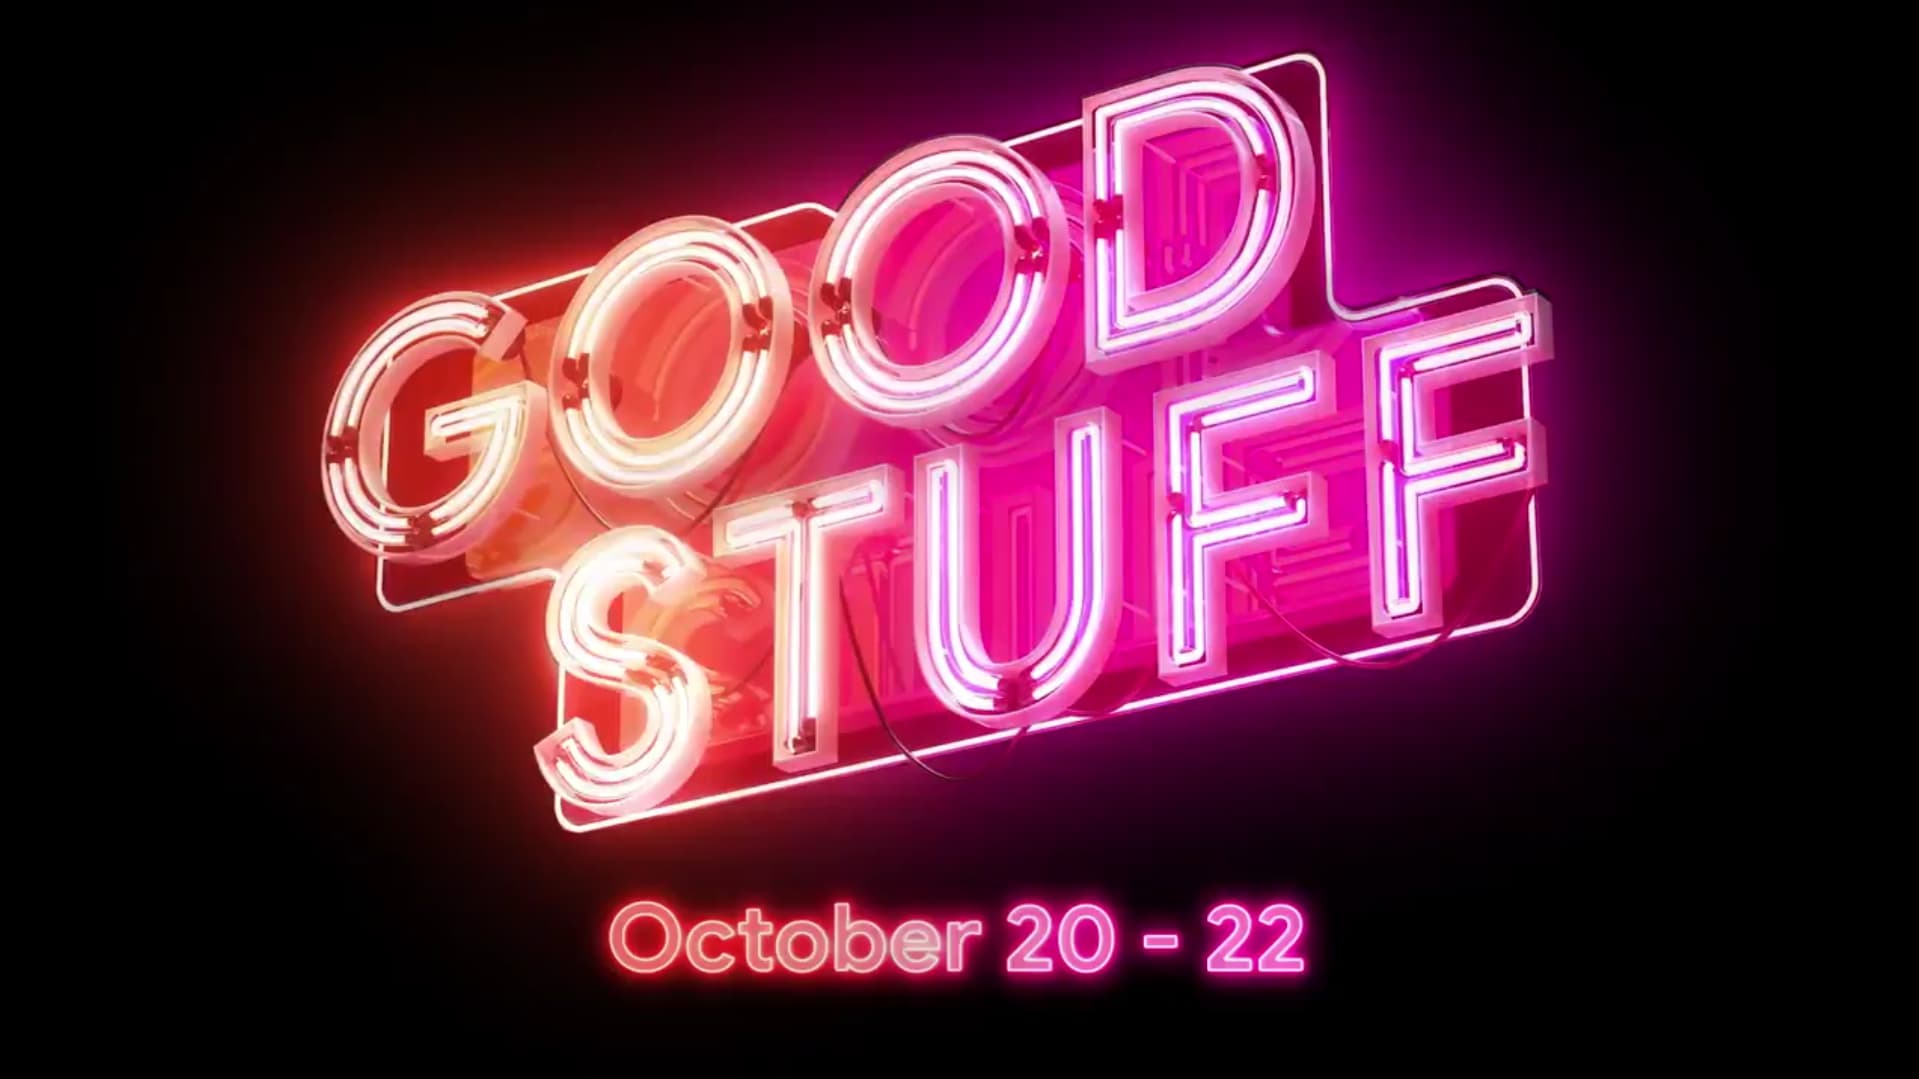 Get ready for the 'Good Stuff' as Stadia prepares a multi-day reveal event for announcements and more